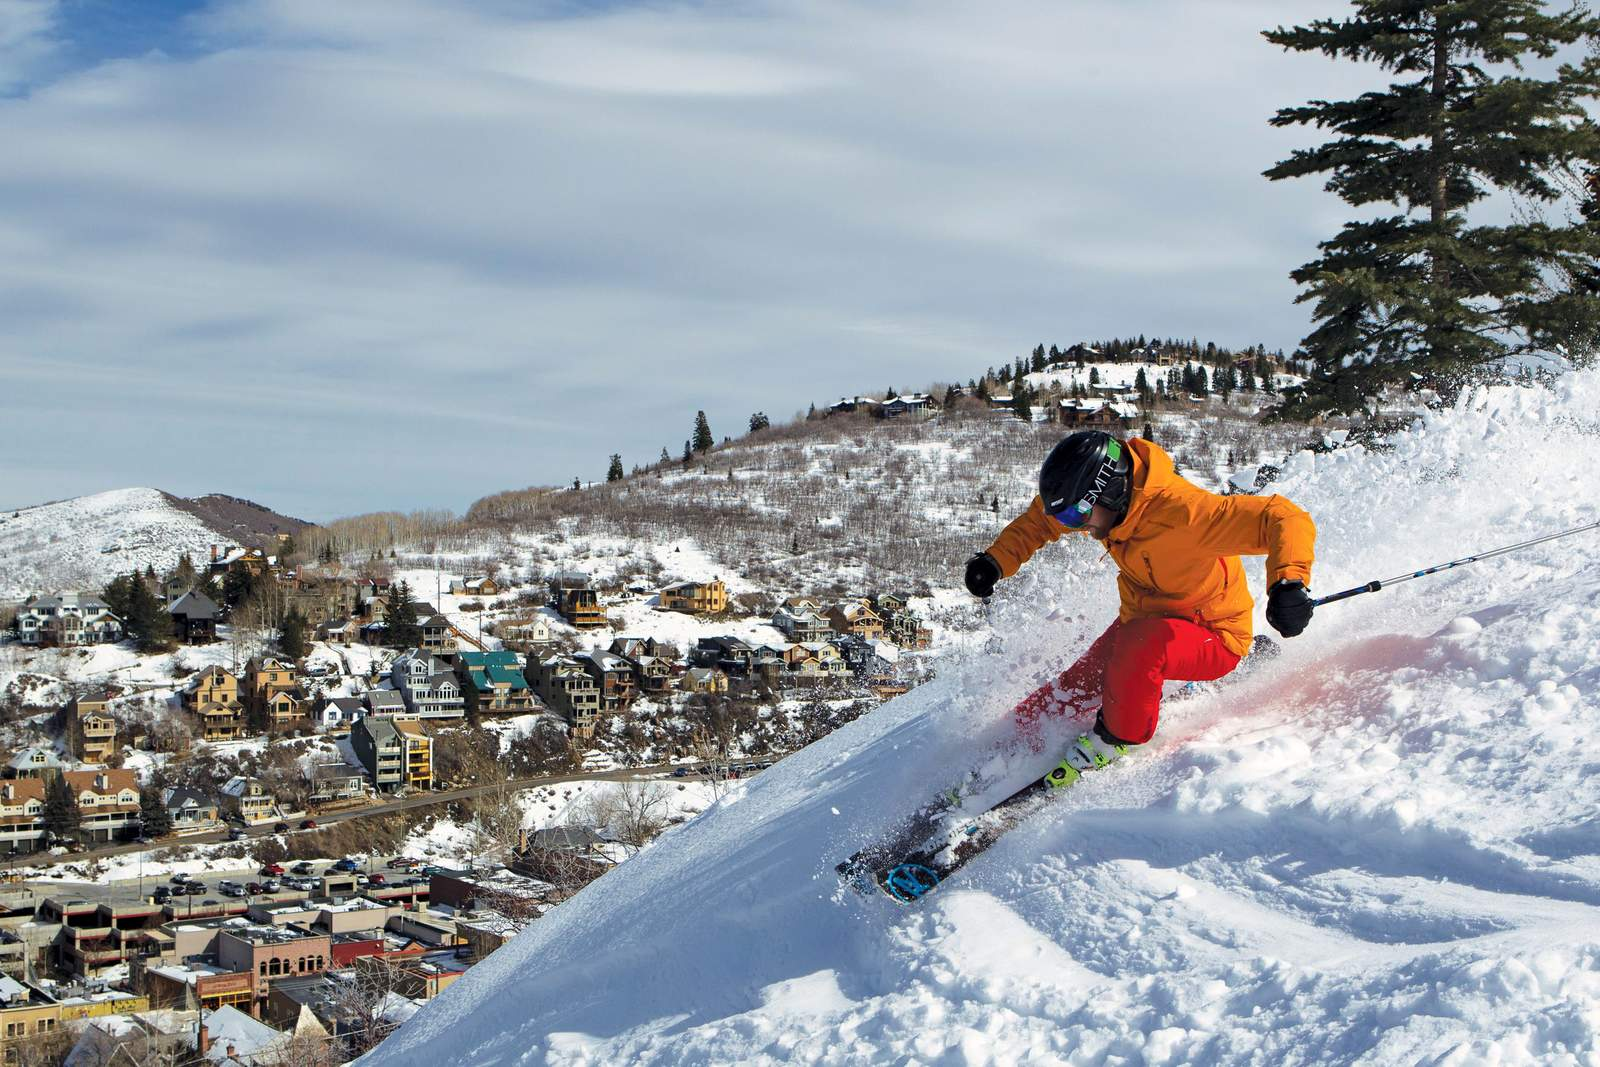 Downhill Skiing, Piste, Town, Vail Resort